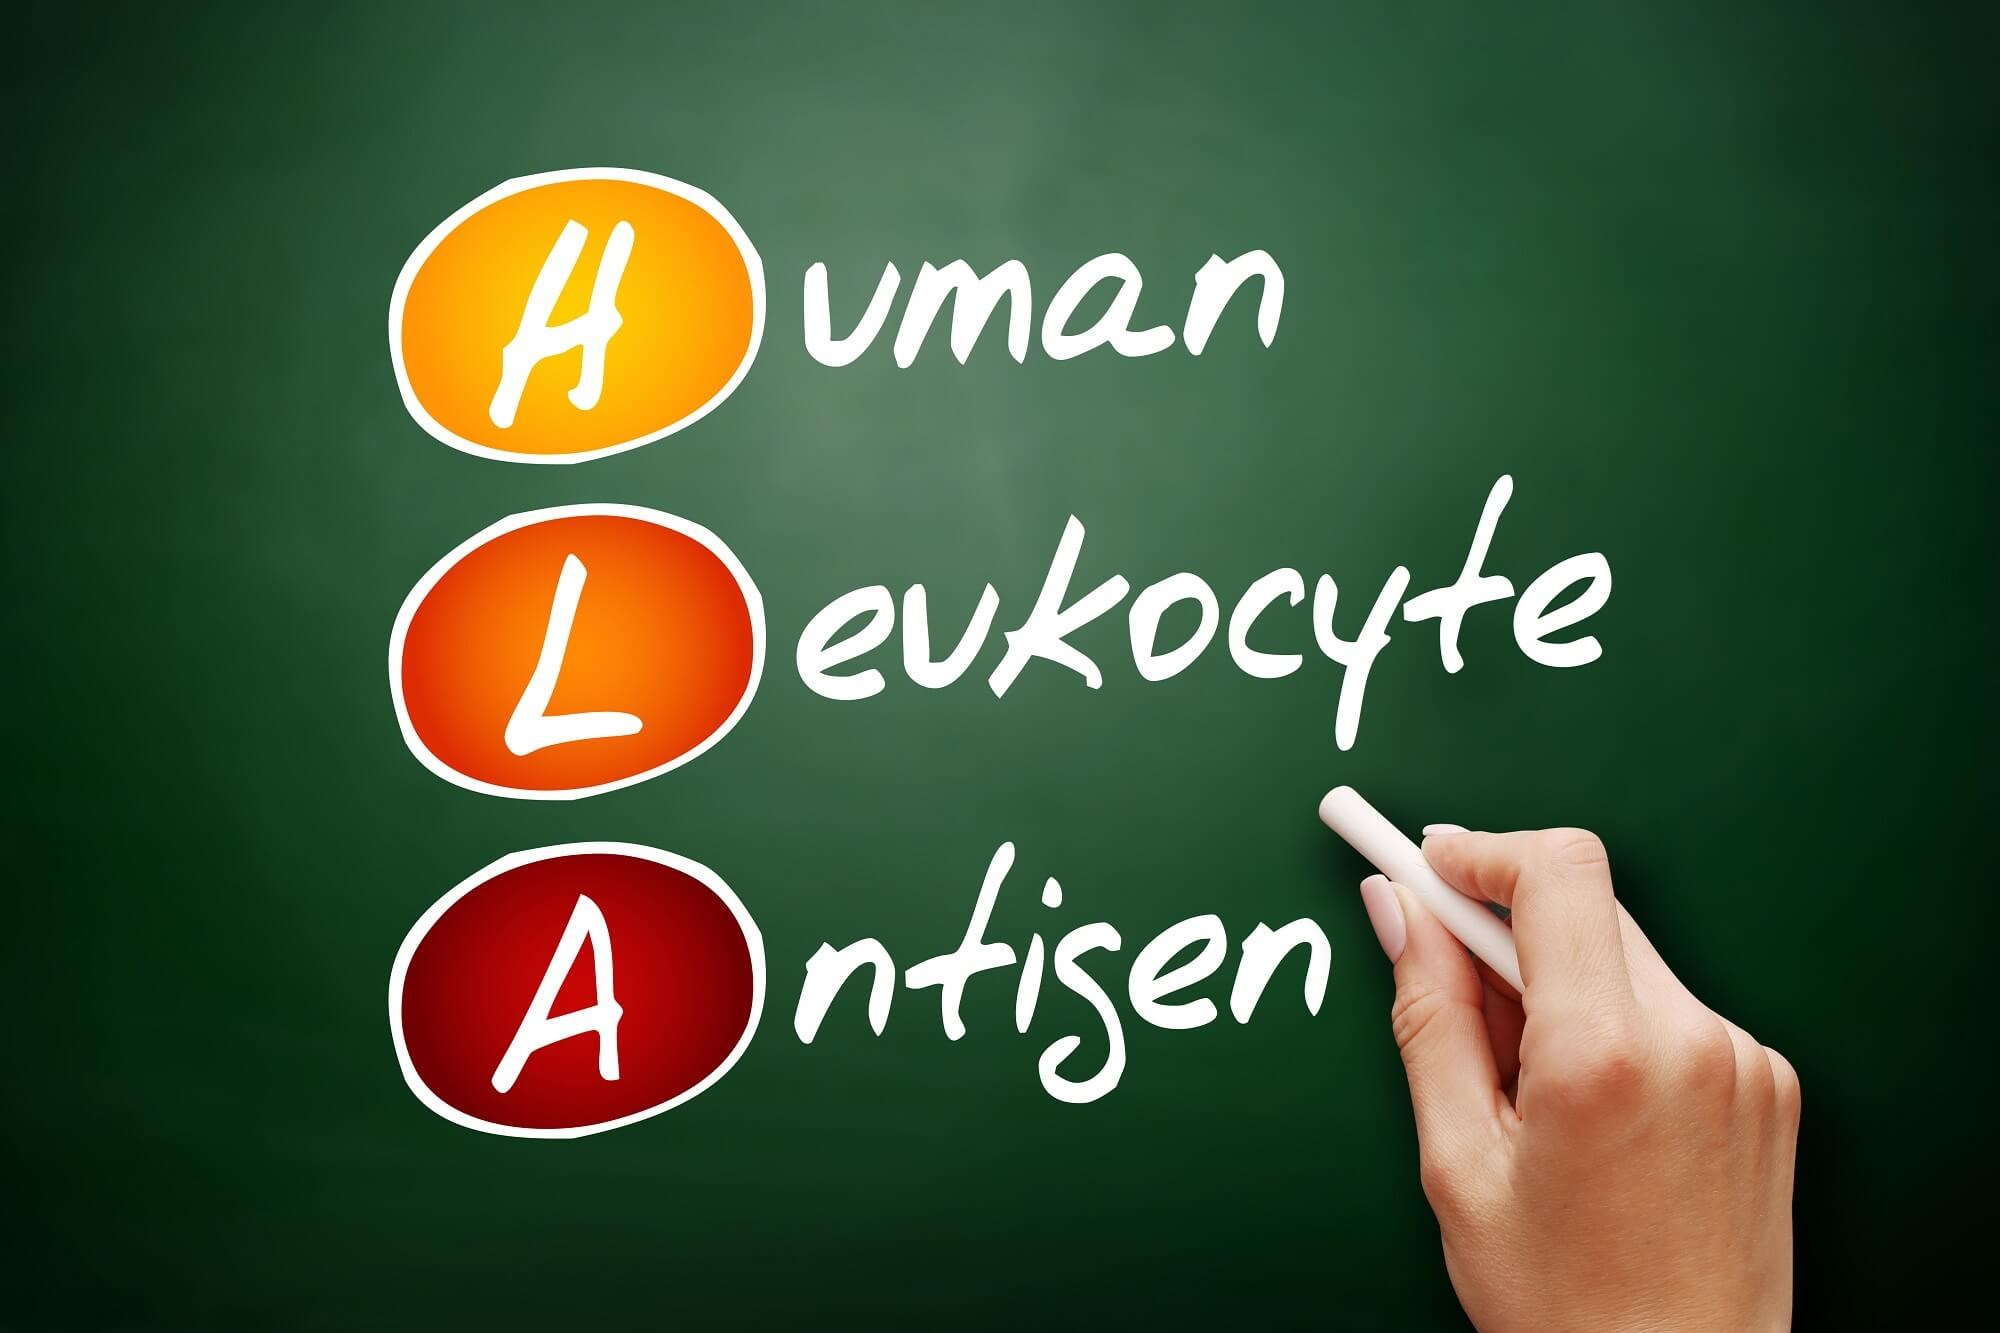 Human Leukocyte Antigen System Likely Plays a Role in Course of HBV Infections